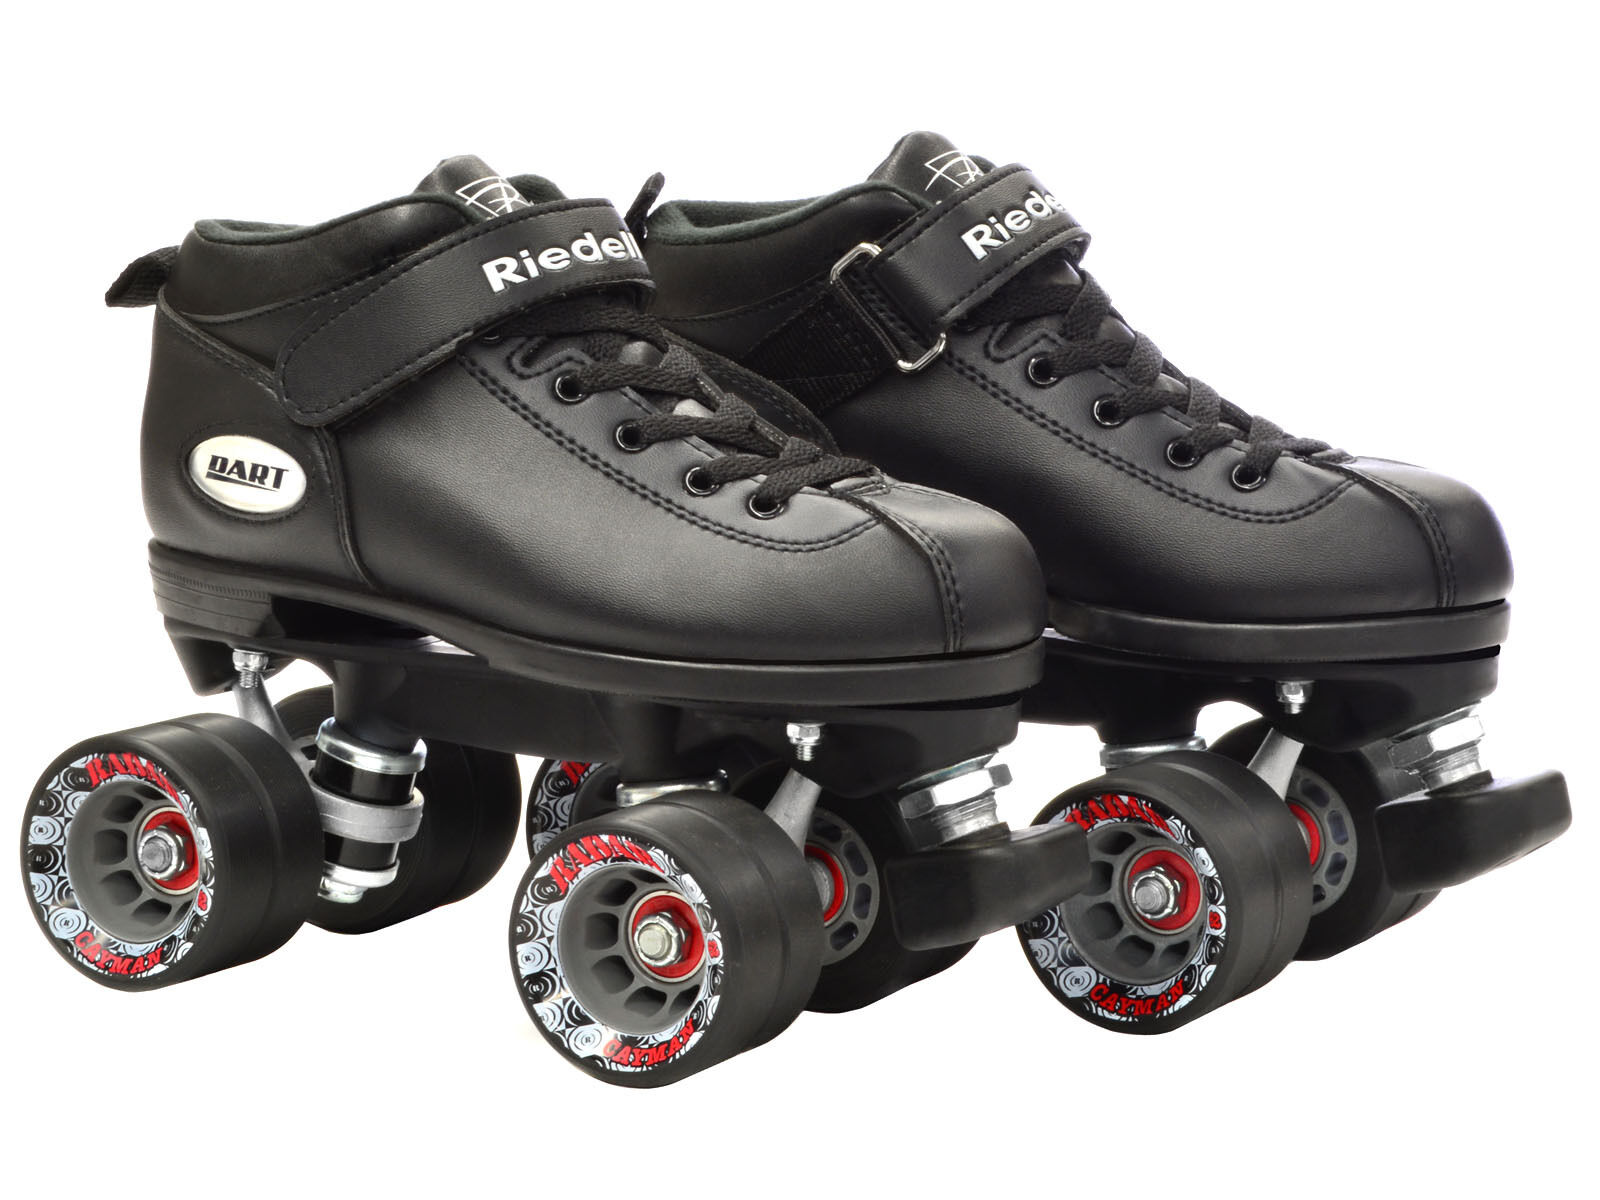 riedell speed skate boots